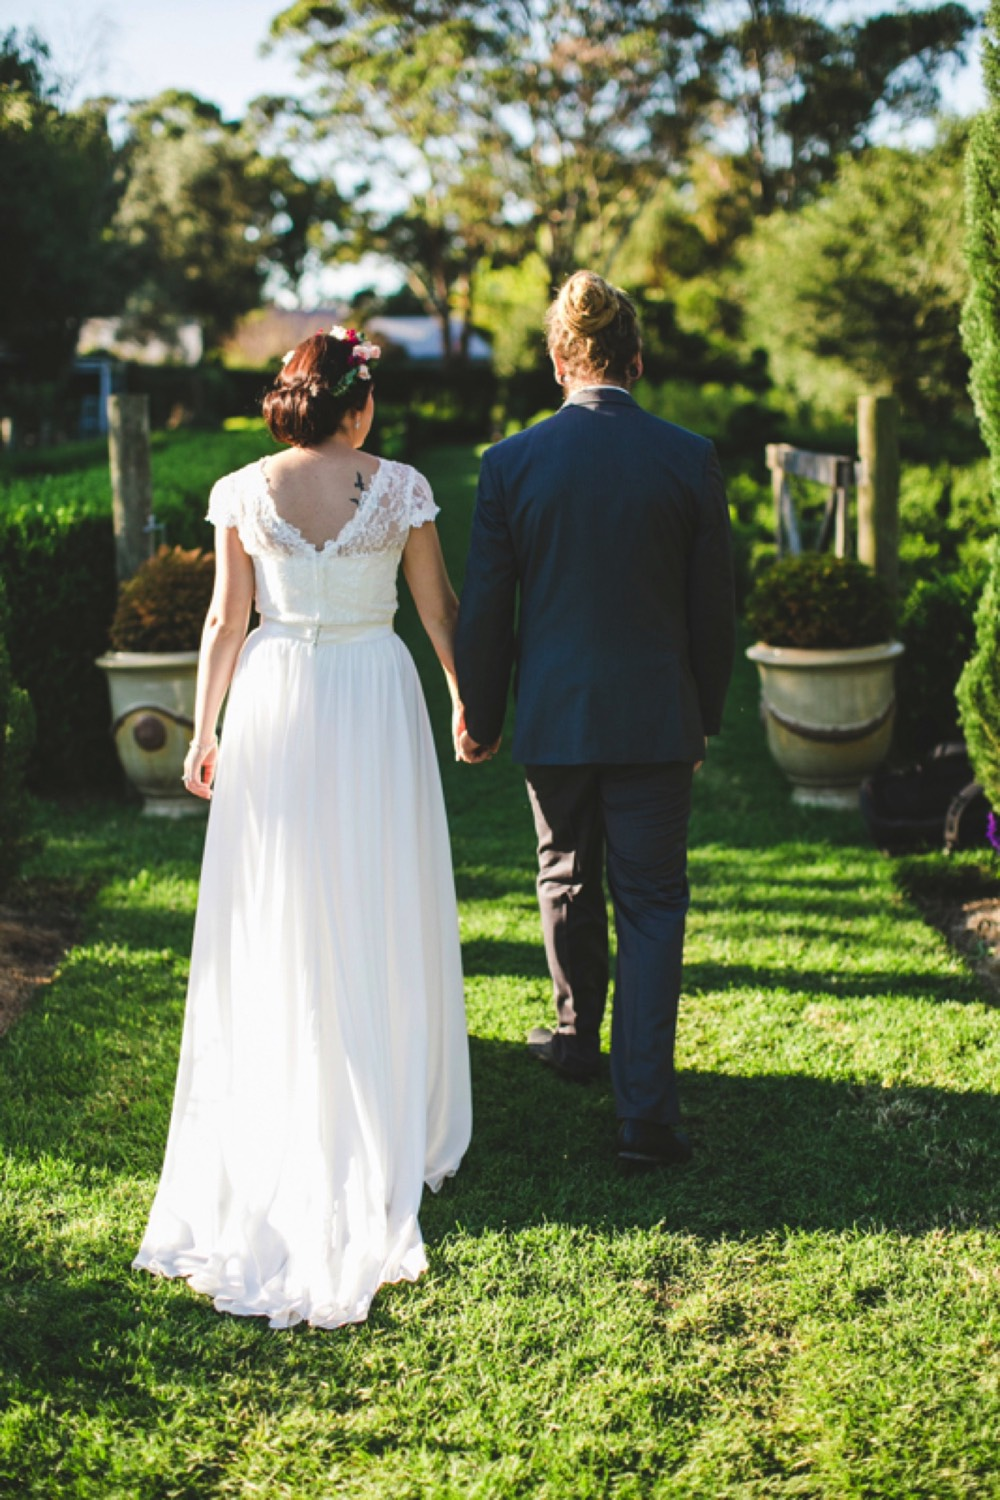 bowral-wedding-videography-merribee_30.jpg